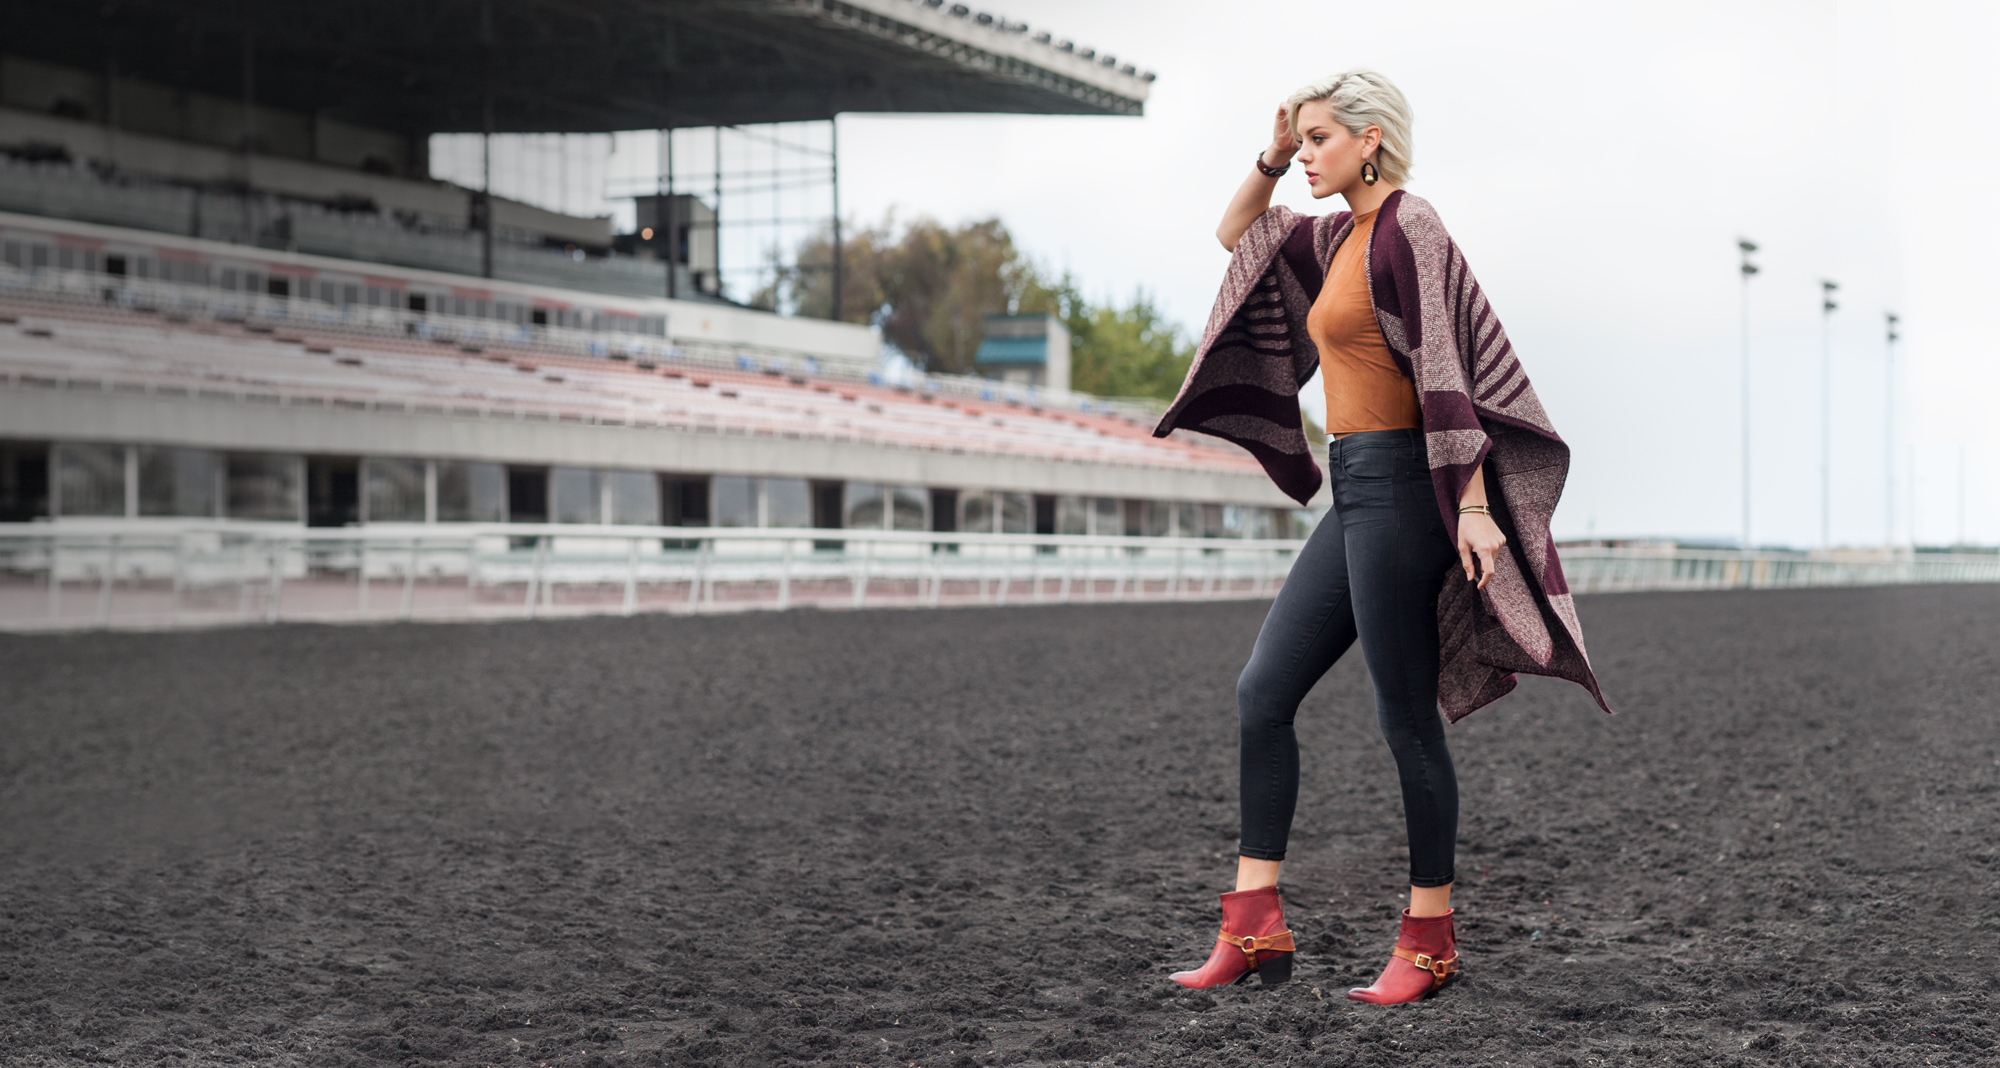 Women modeling fashionable Ariat boots on a horse race track